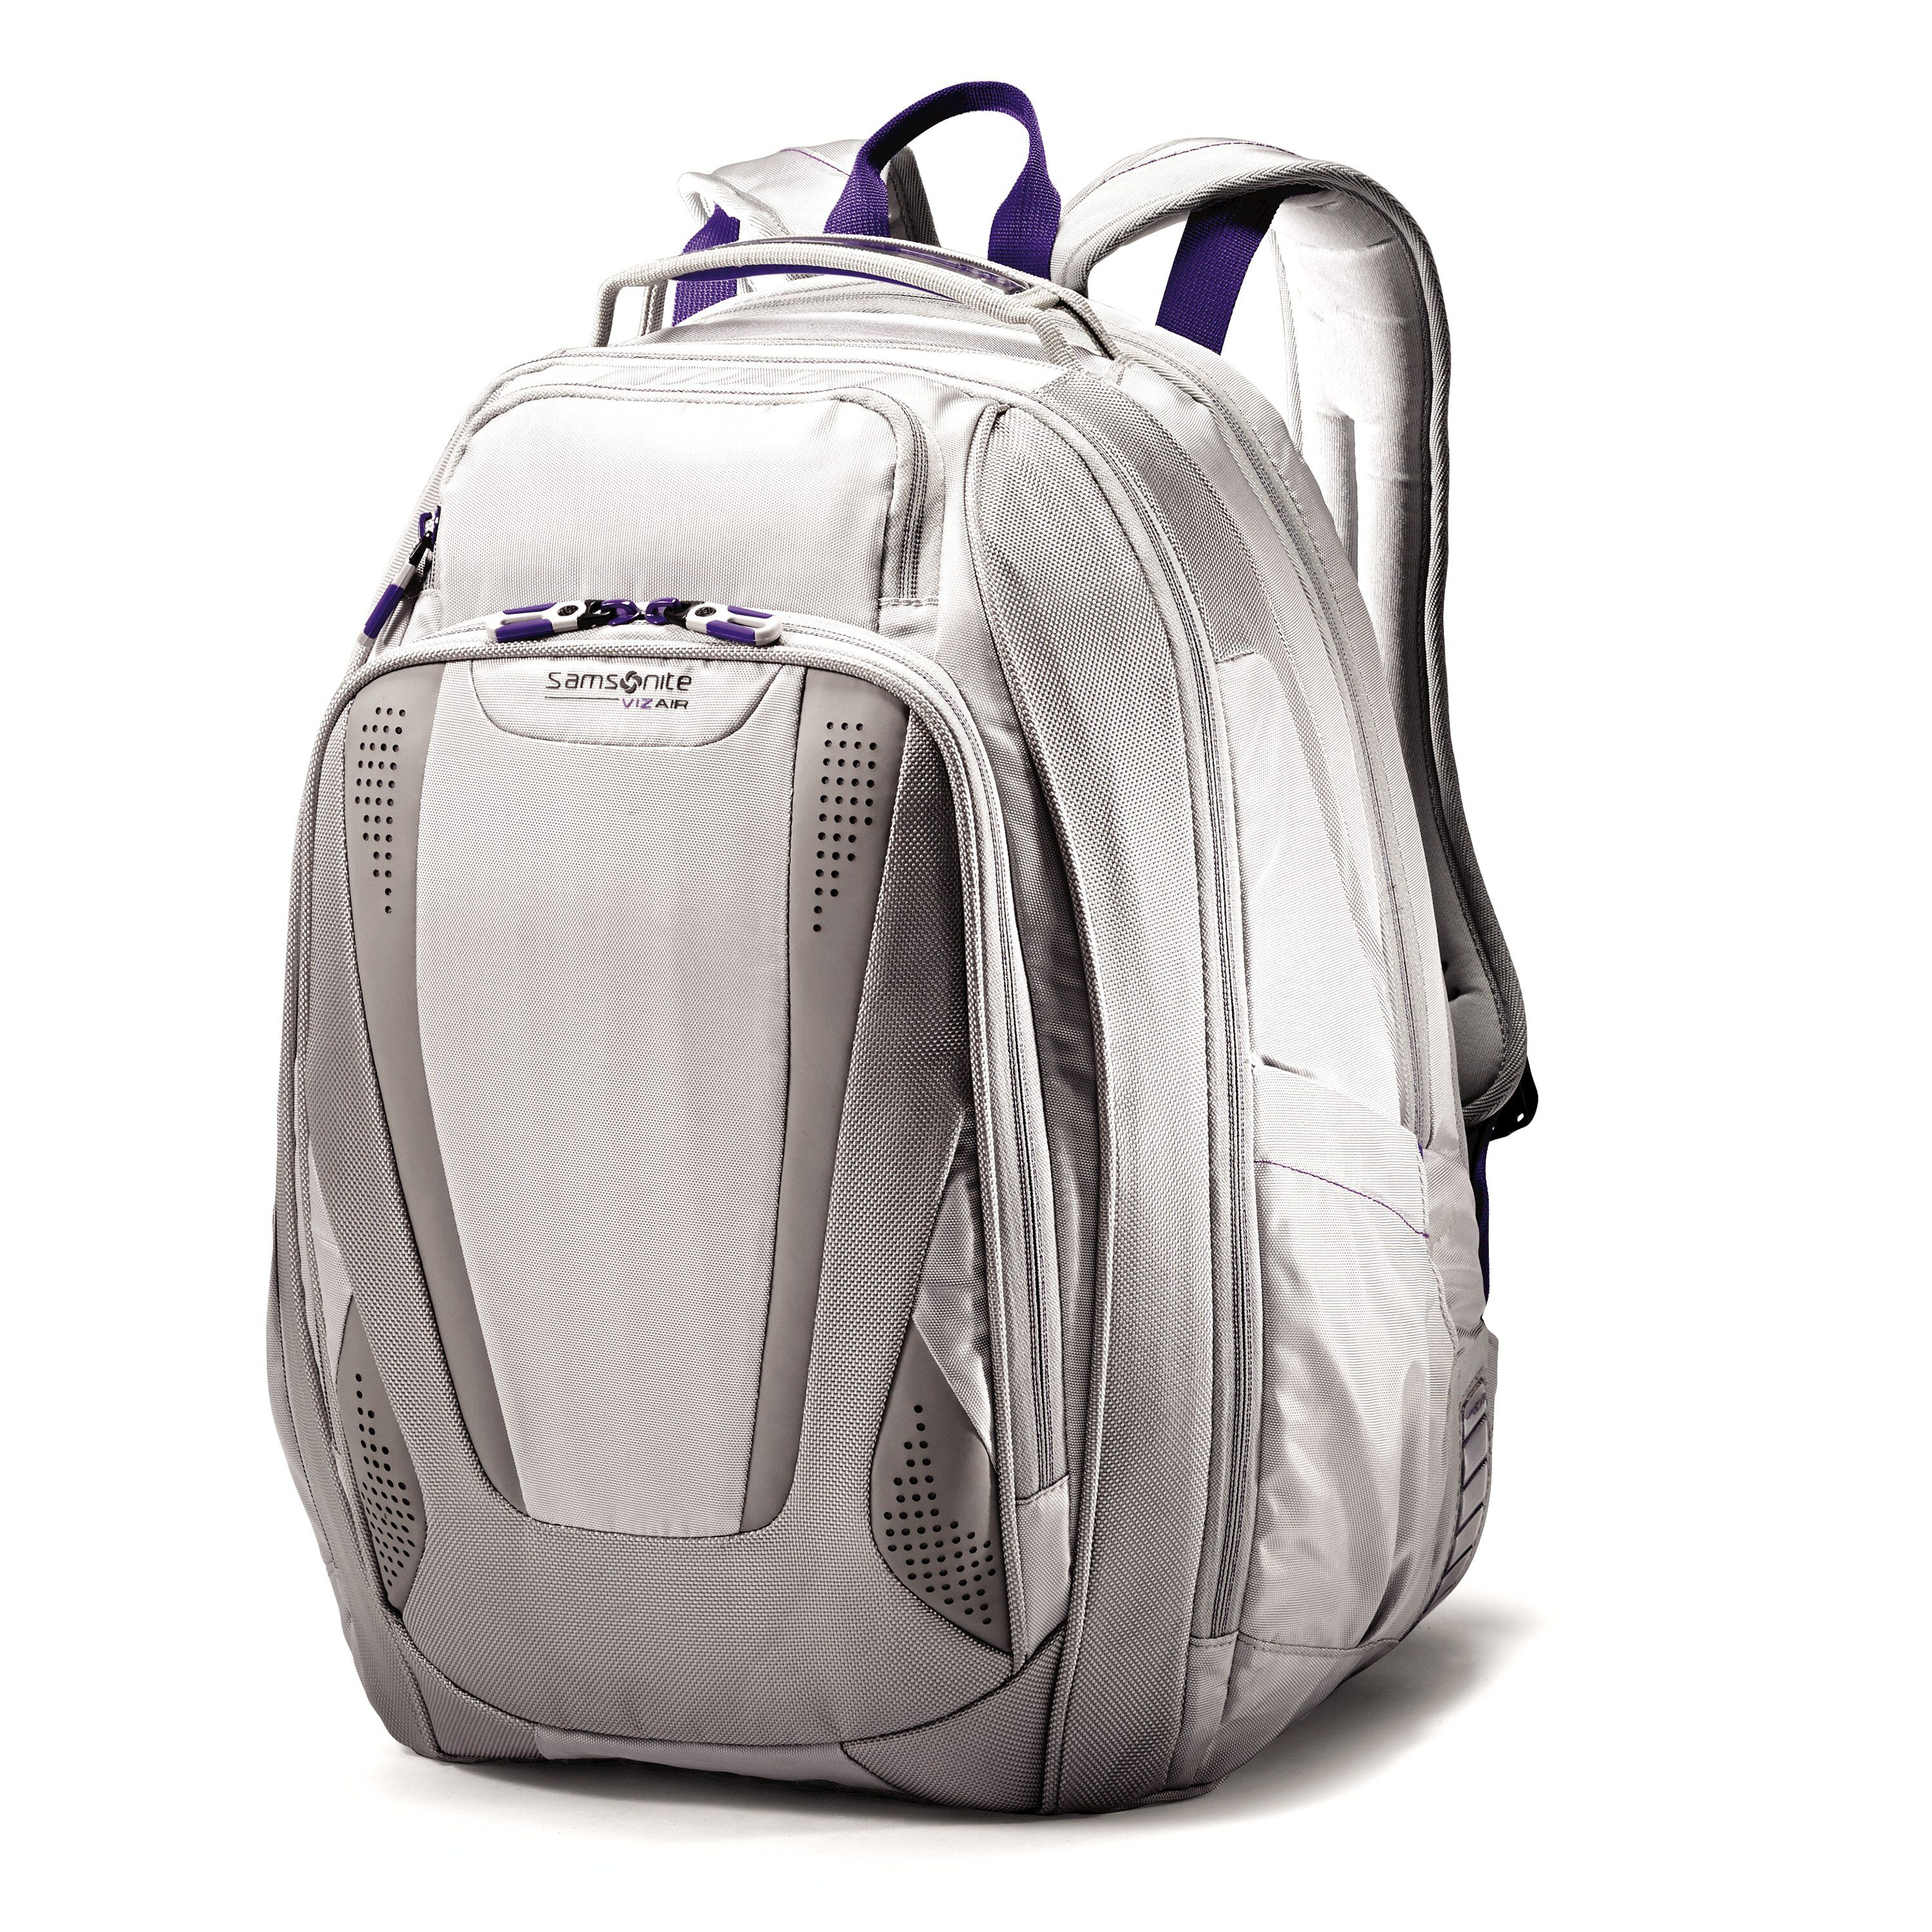 2 Laptop Backpack QQuDk5gs